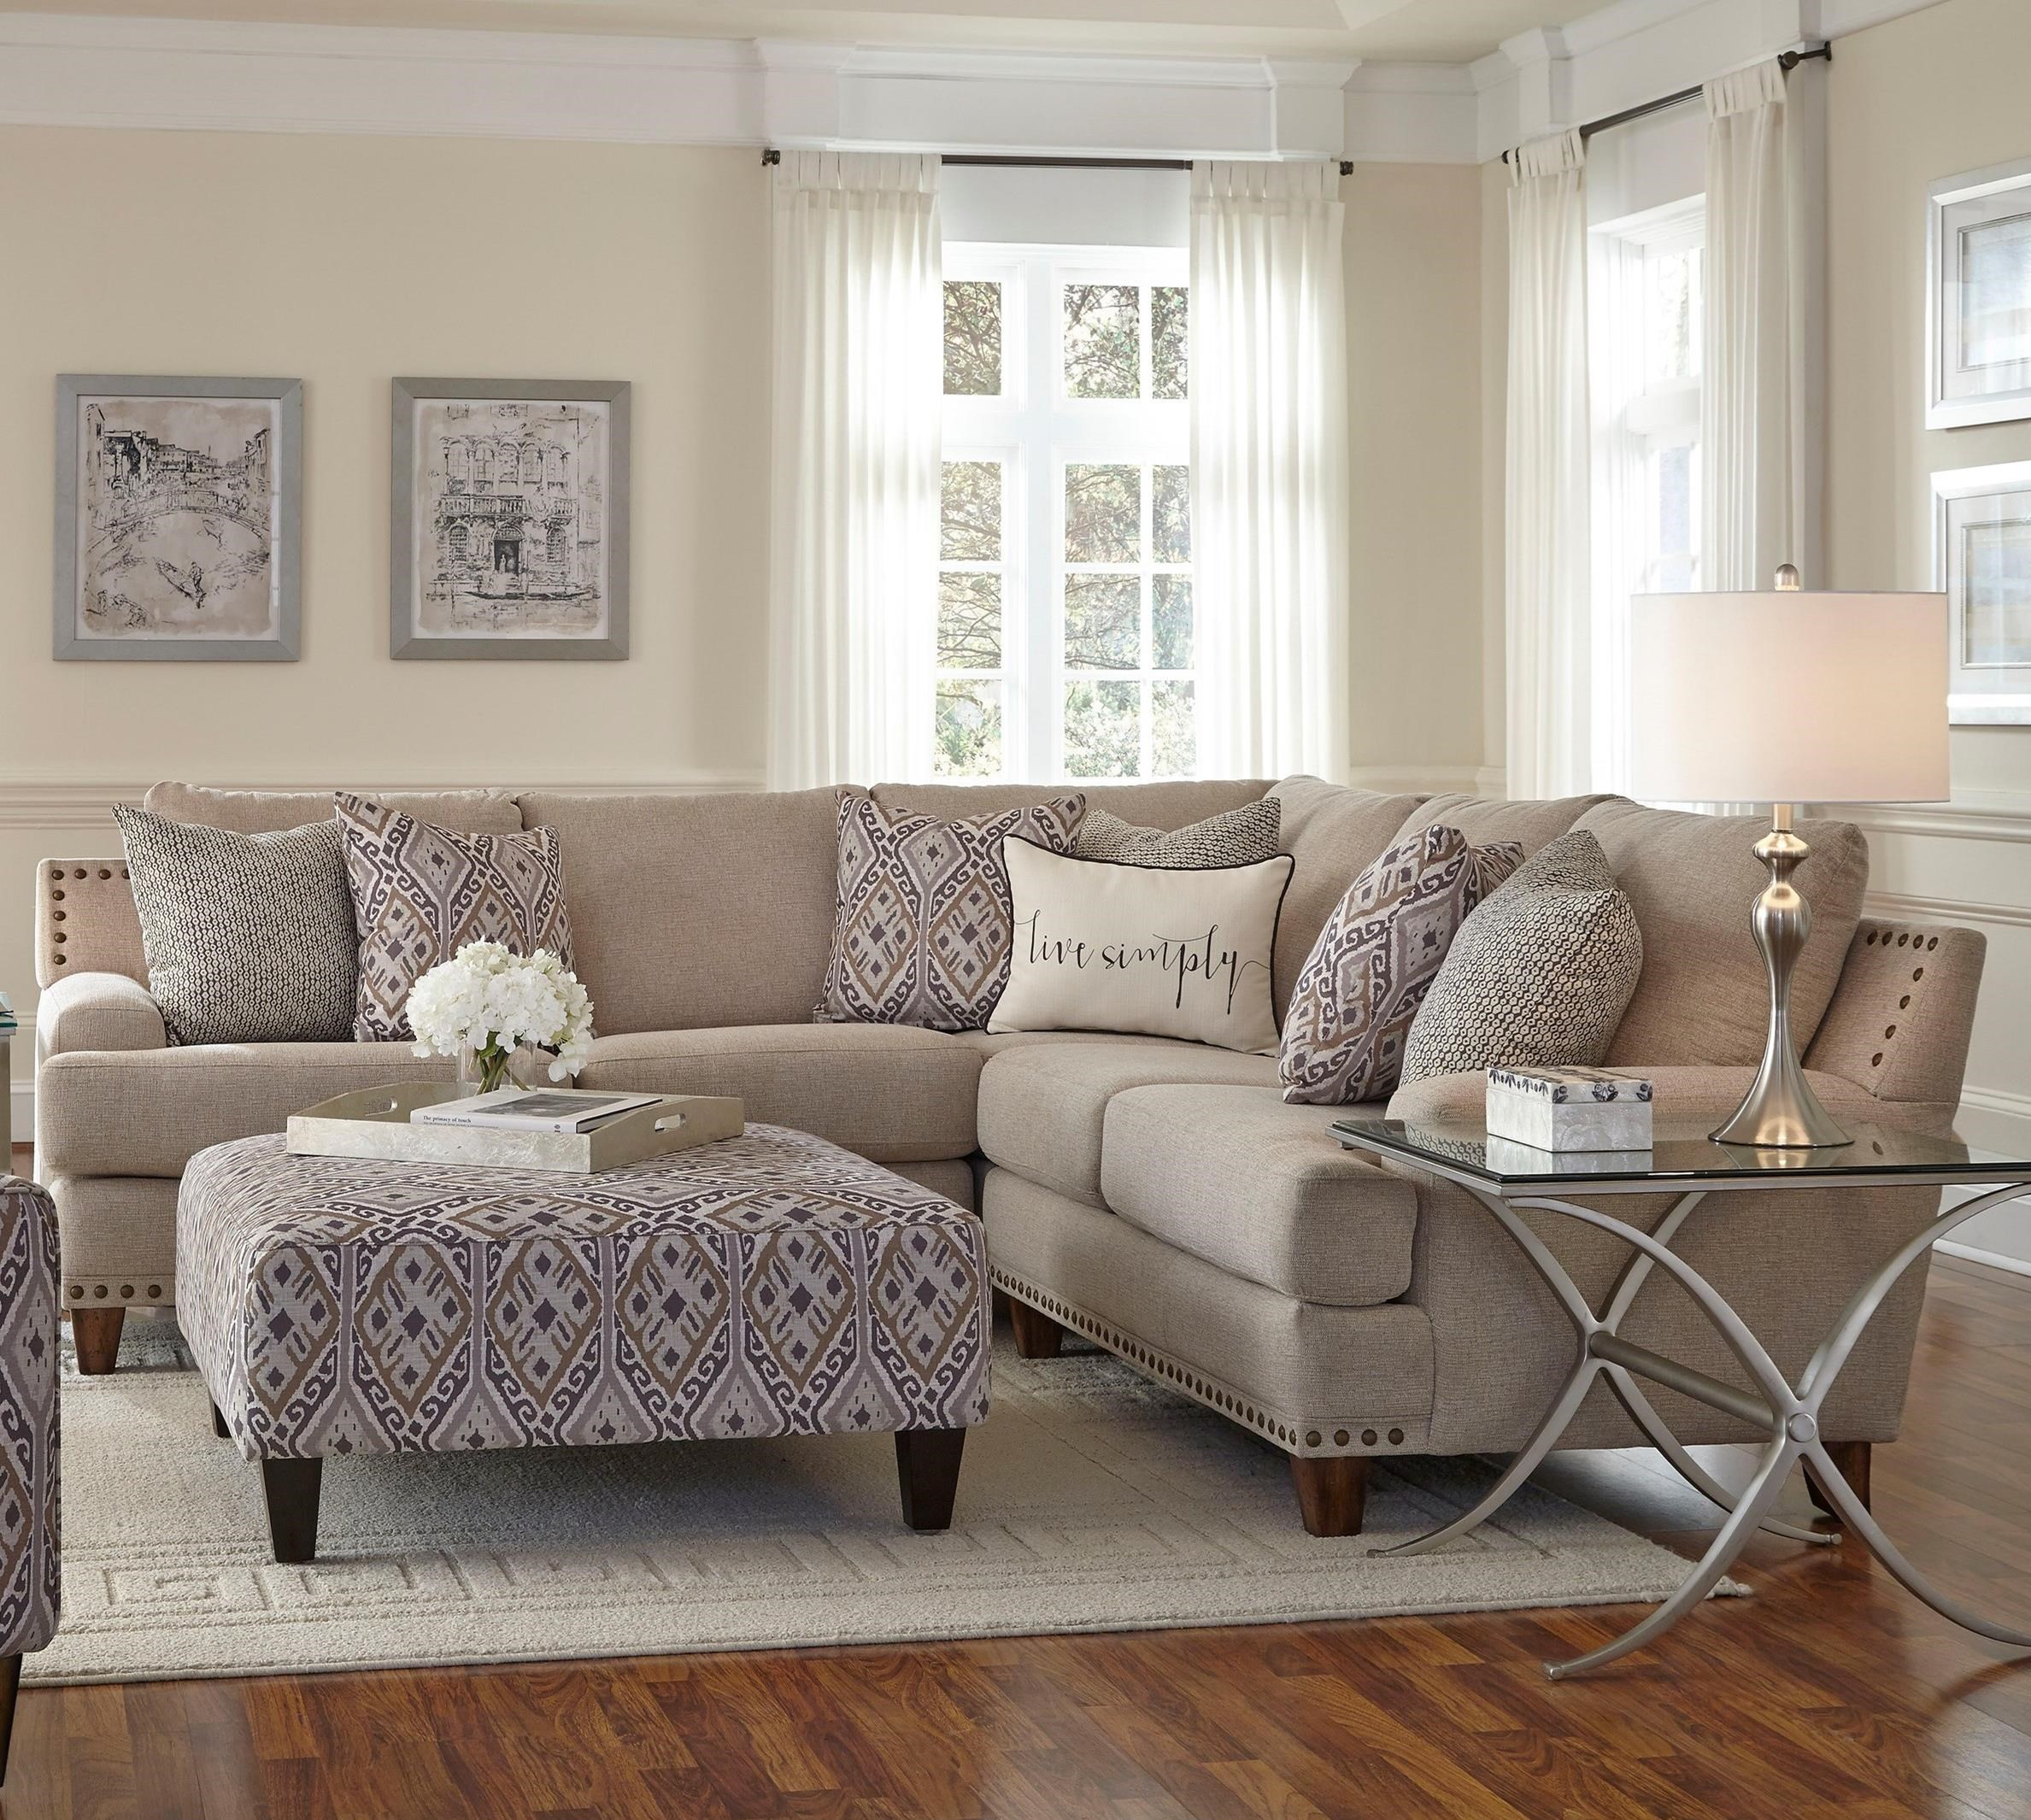 Franklin anna sectional sofa with four seats miskelly furniture sectional sofas for Living room sectional furniture